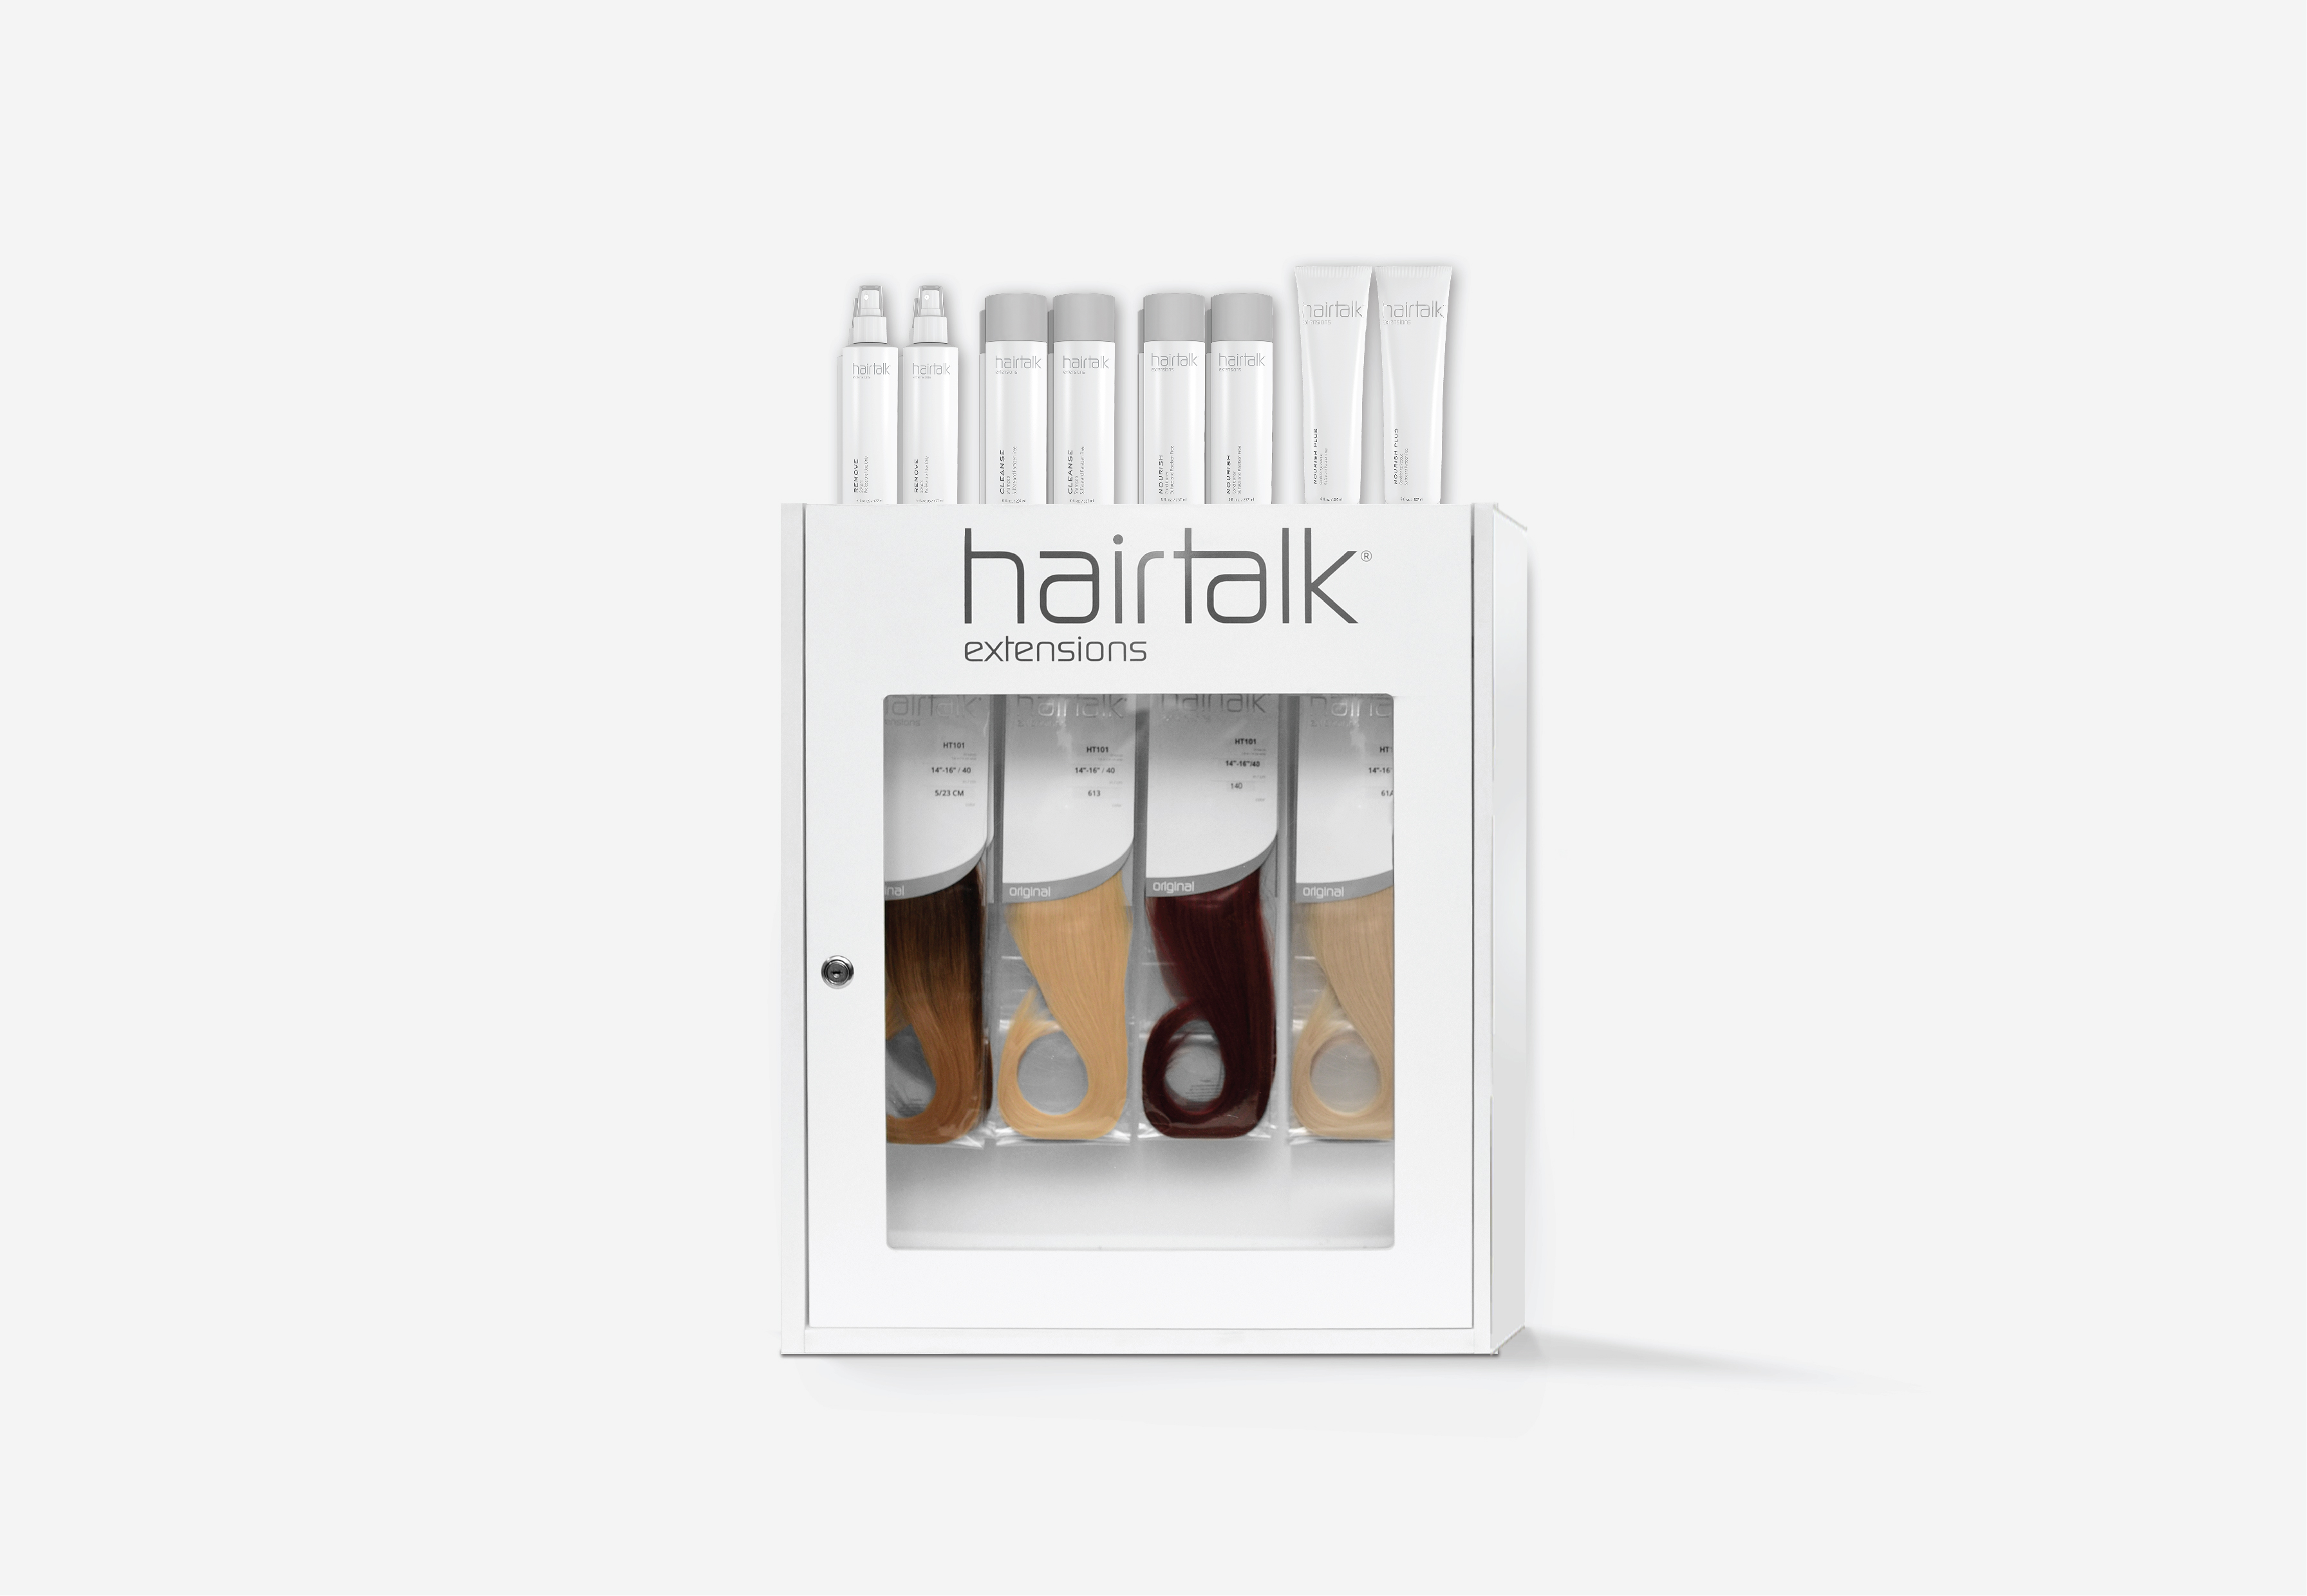 Hairtalk's Countertop/Wall Mount Extension Stocking Cabinet